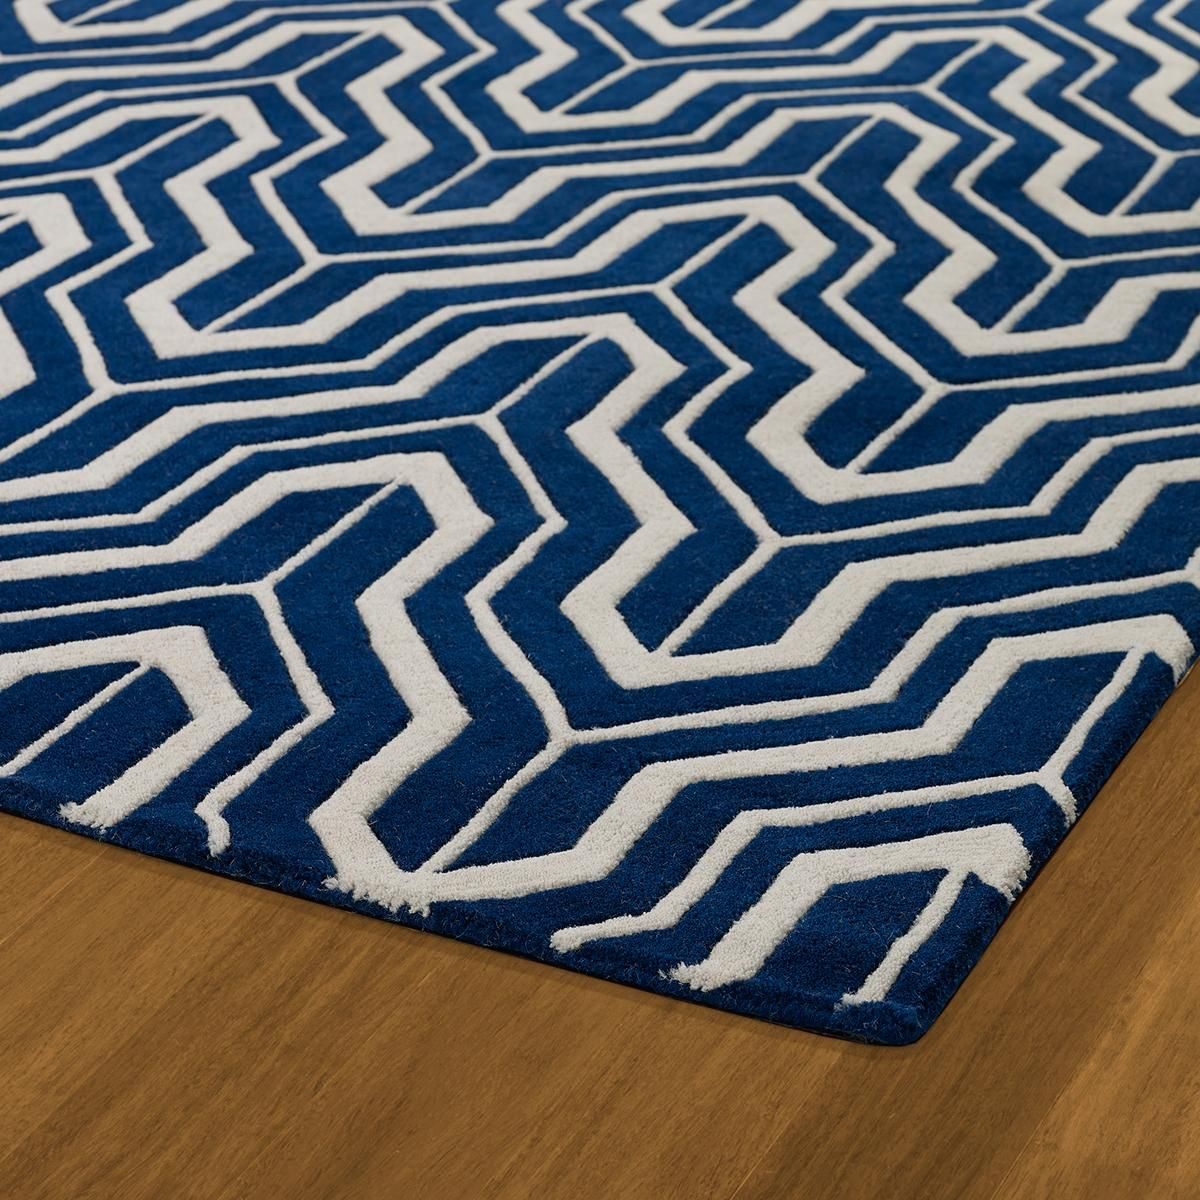 Plush Modern Geometric Rug Luxe Color Combinations Take